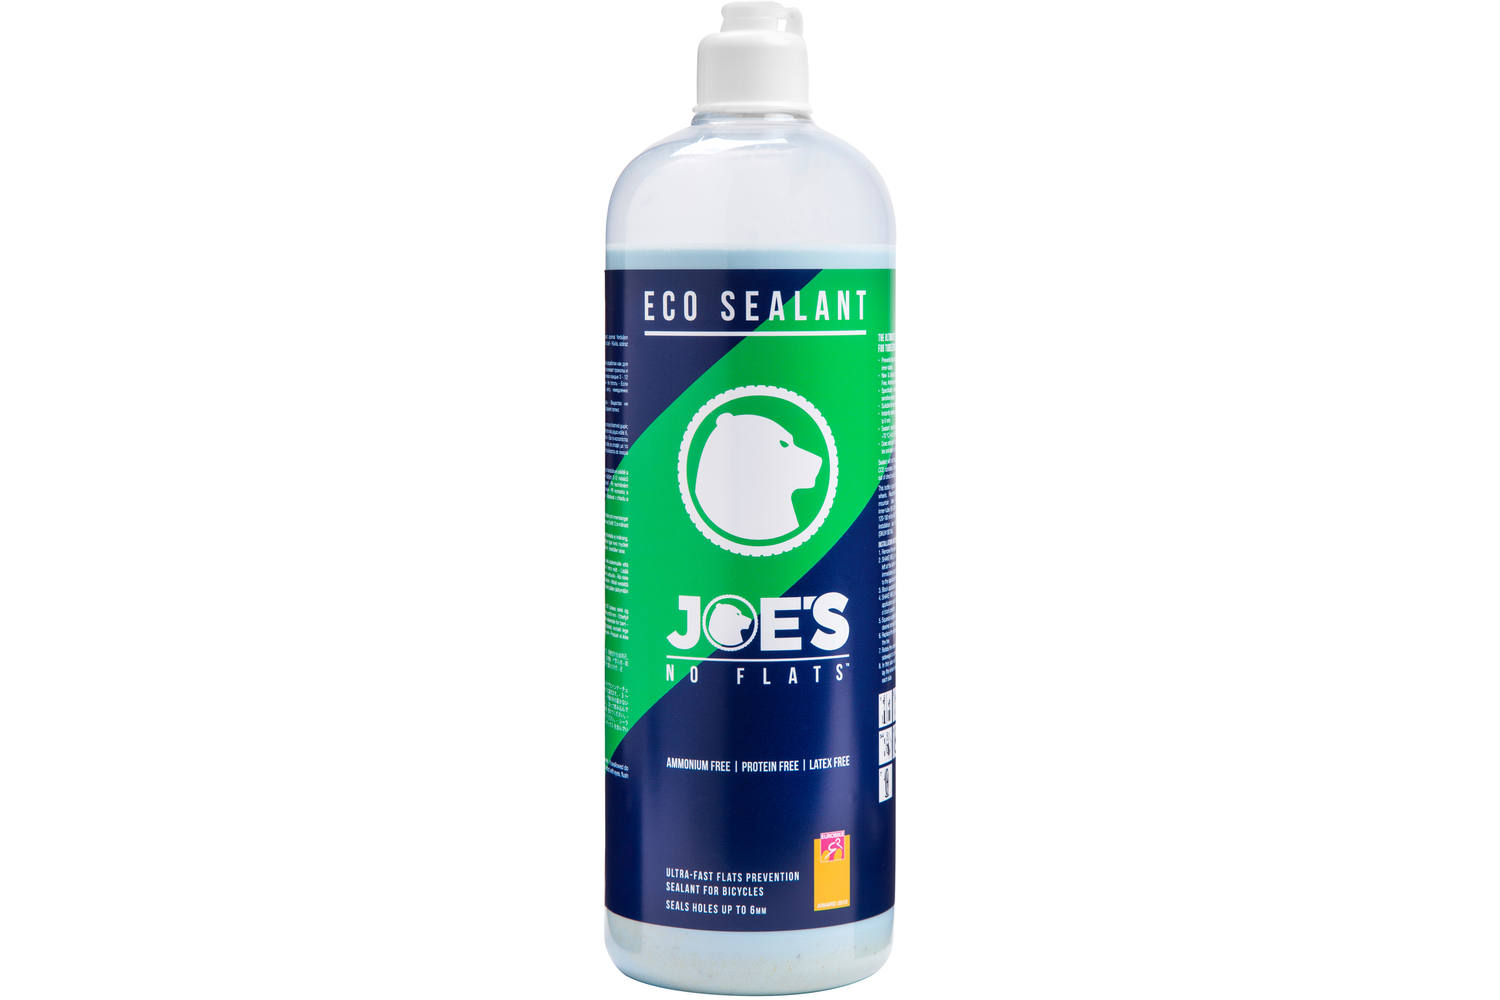 Joes No-Flats Eco Sealant Blue 1 Liter Bottle